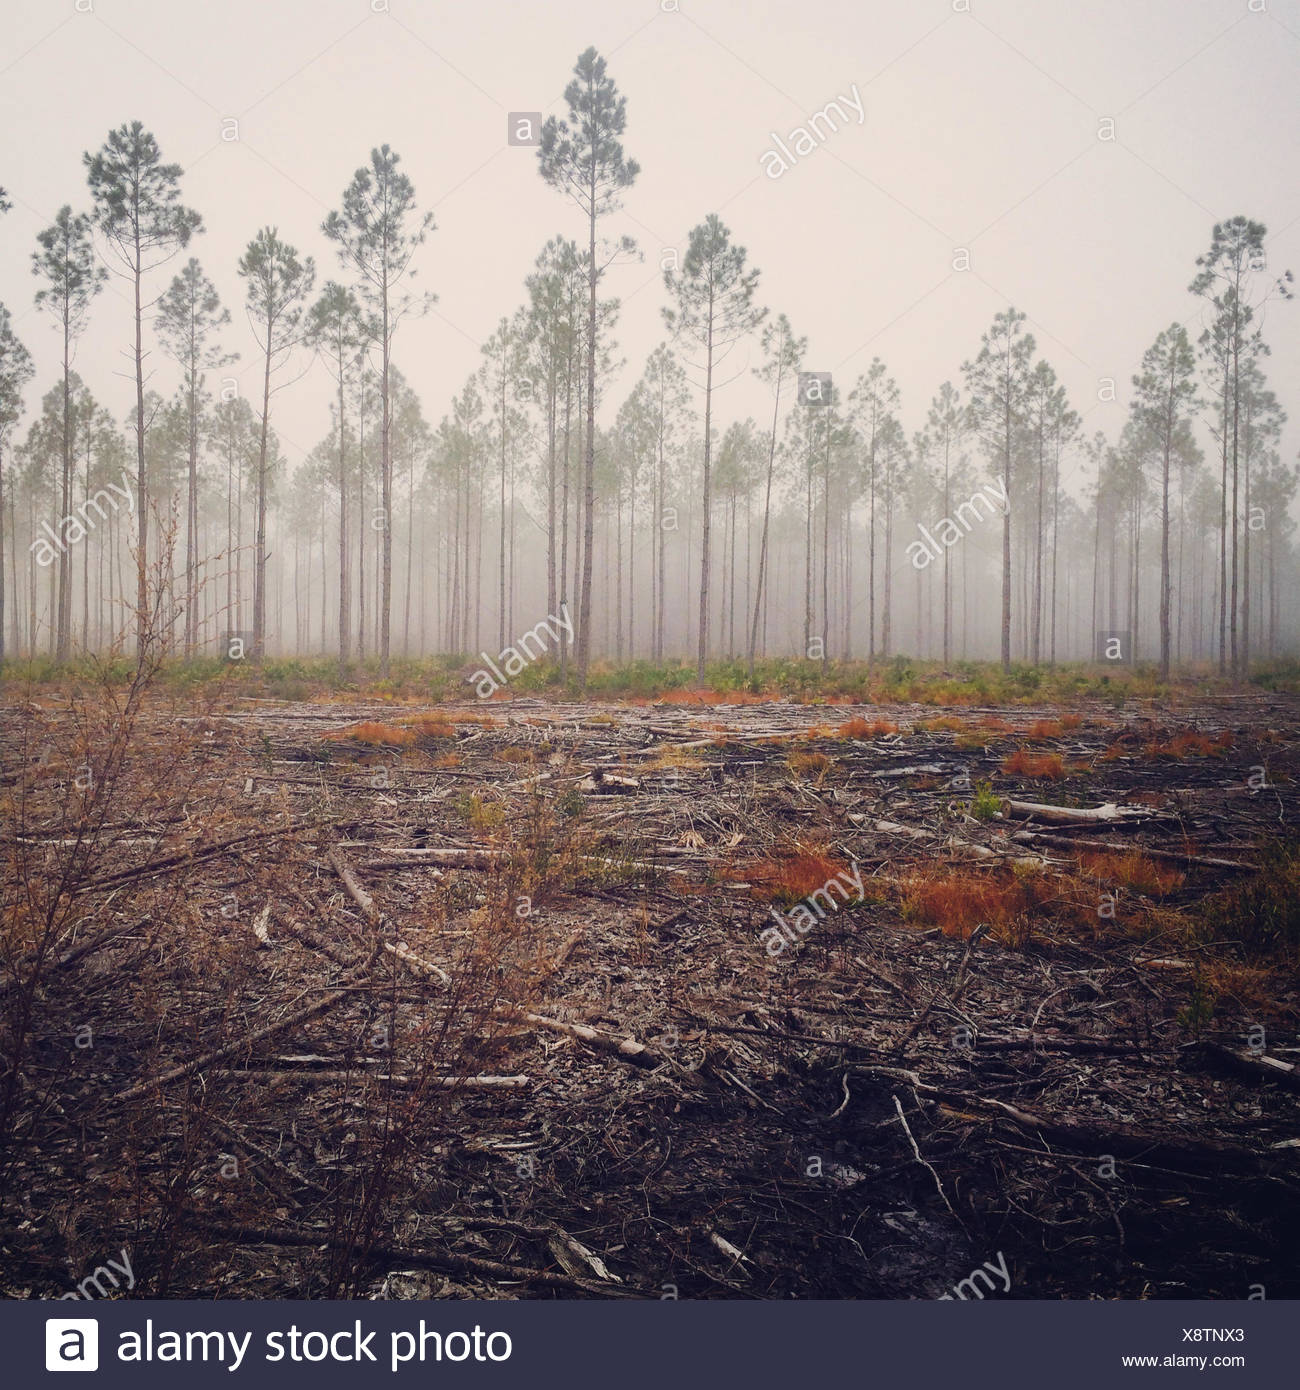 View of pine tree in fog, America, USA - Stock Image